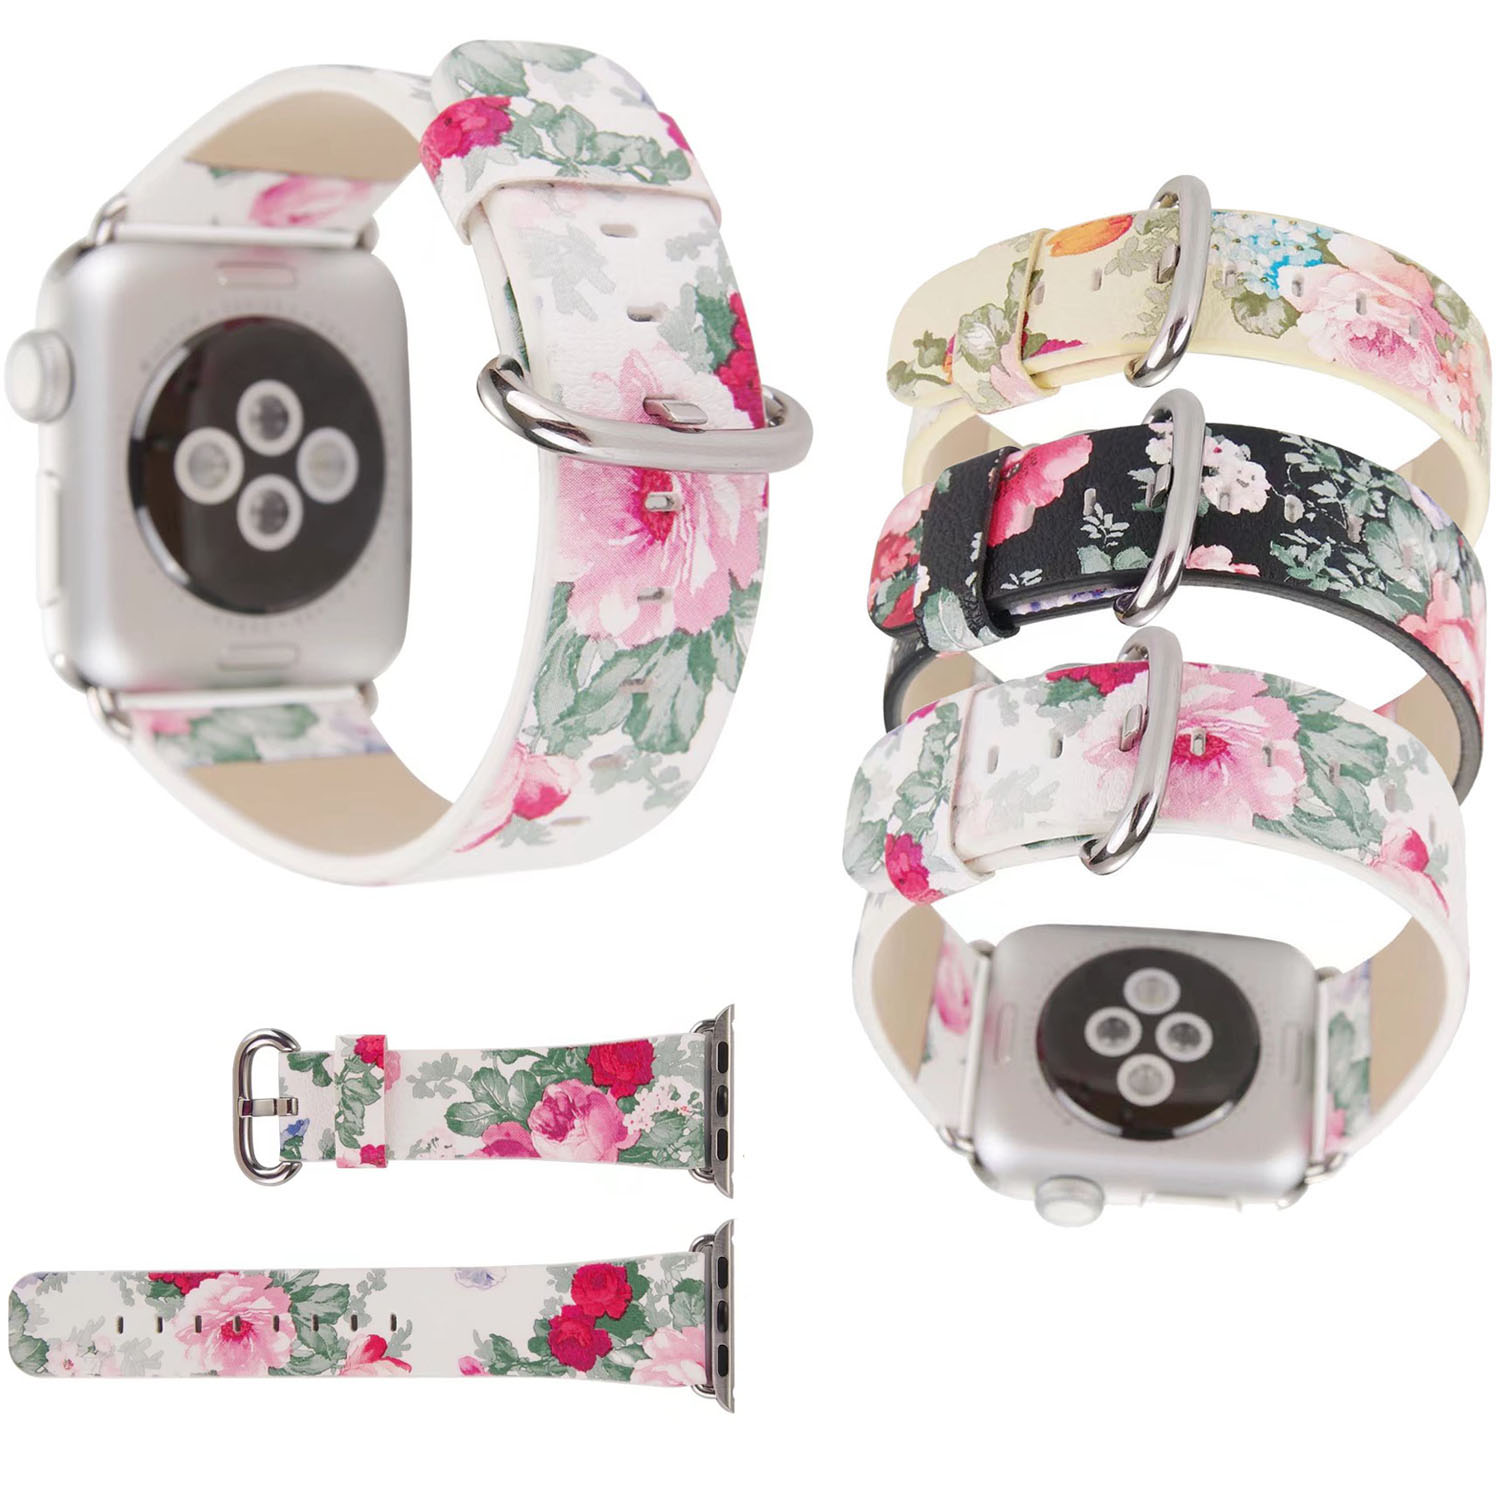 Flower Leather Strap for Apple Watch Series 3 Band Women Floral Print Bracelet for Apple iWatch Series 1/2 42mm 38mm Watchbands luxury ladies watch strap for apple watch series 1 2 3 wrist band hand made by crystal bracelet for apple watch series iwatch